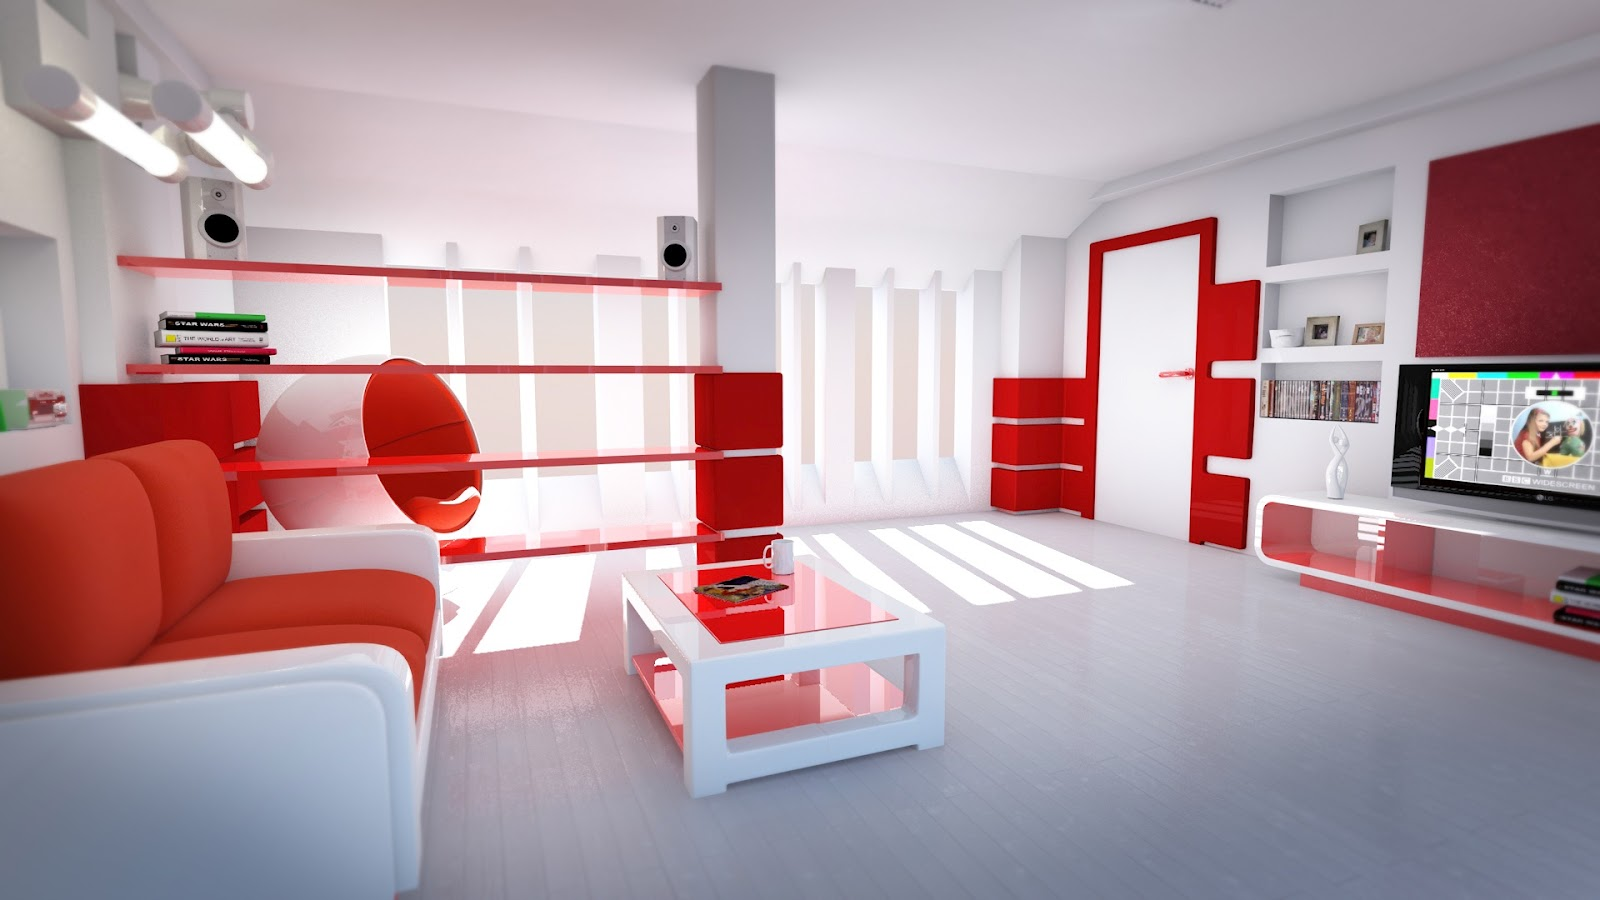 Fotos de casas im genes casas y fachadas for Red room design ideas